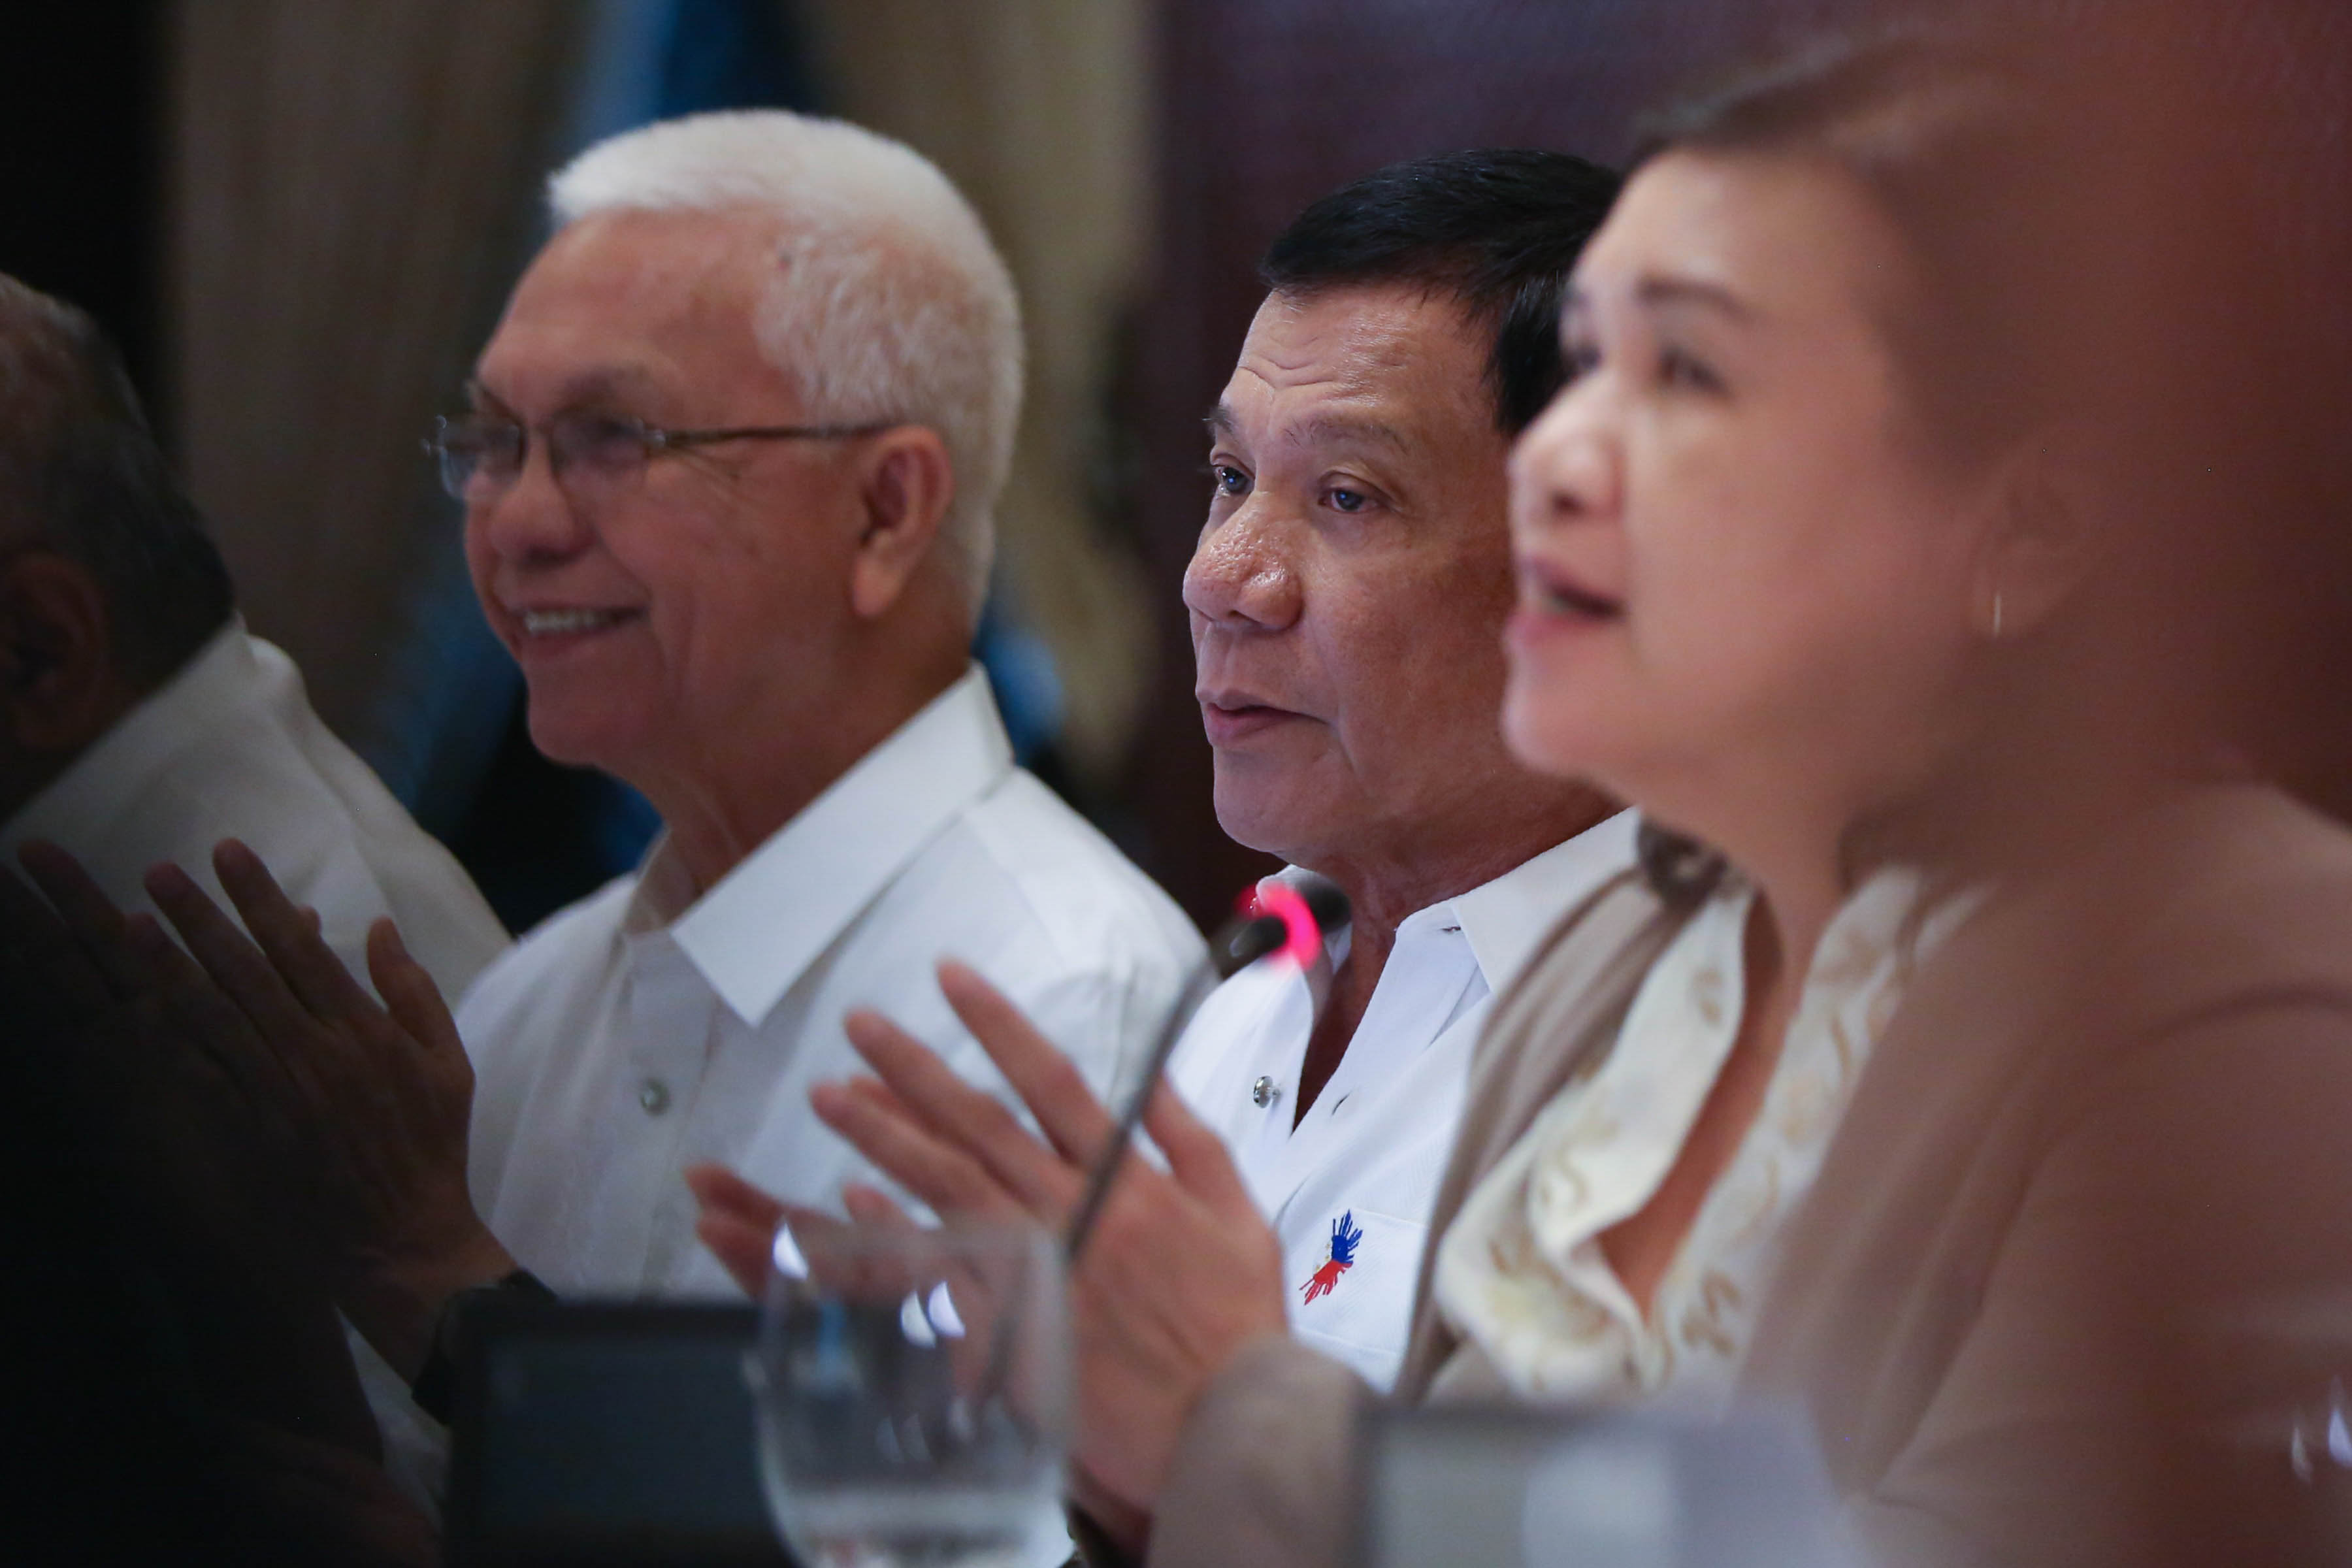 COLORFUL CABINET. President Duterte sits between Leftist Cabinet members, Cabinet Secretary Jun Evasco and NAPC chairperson Liza Maza during a NAPC meeting in the Palace. Presidential photo